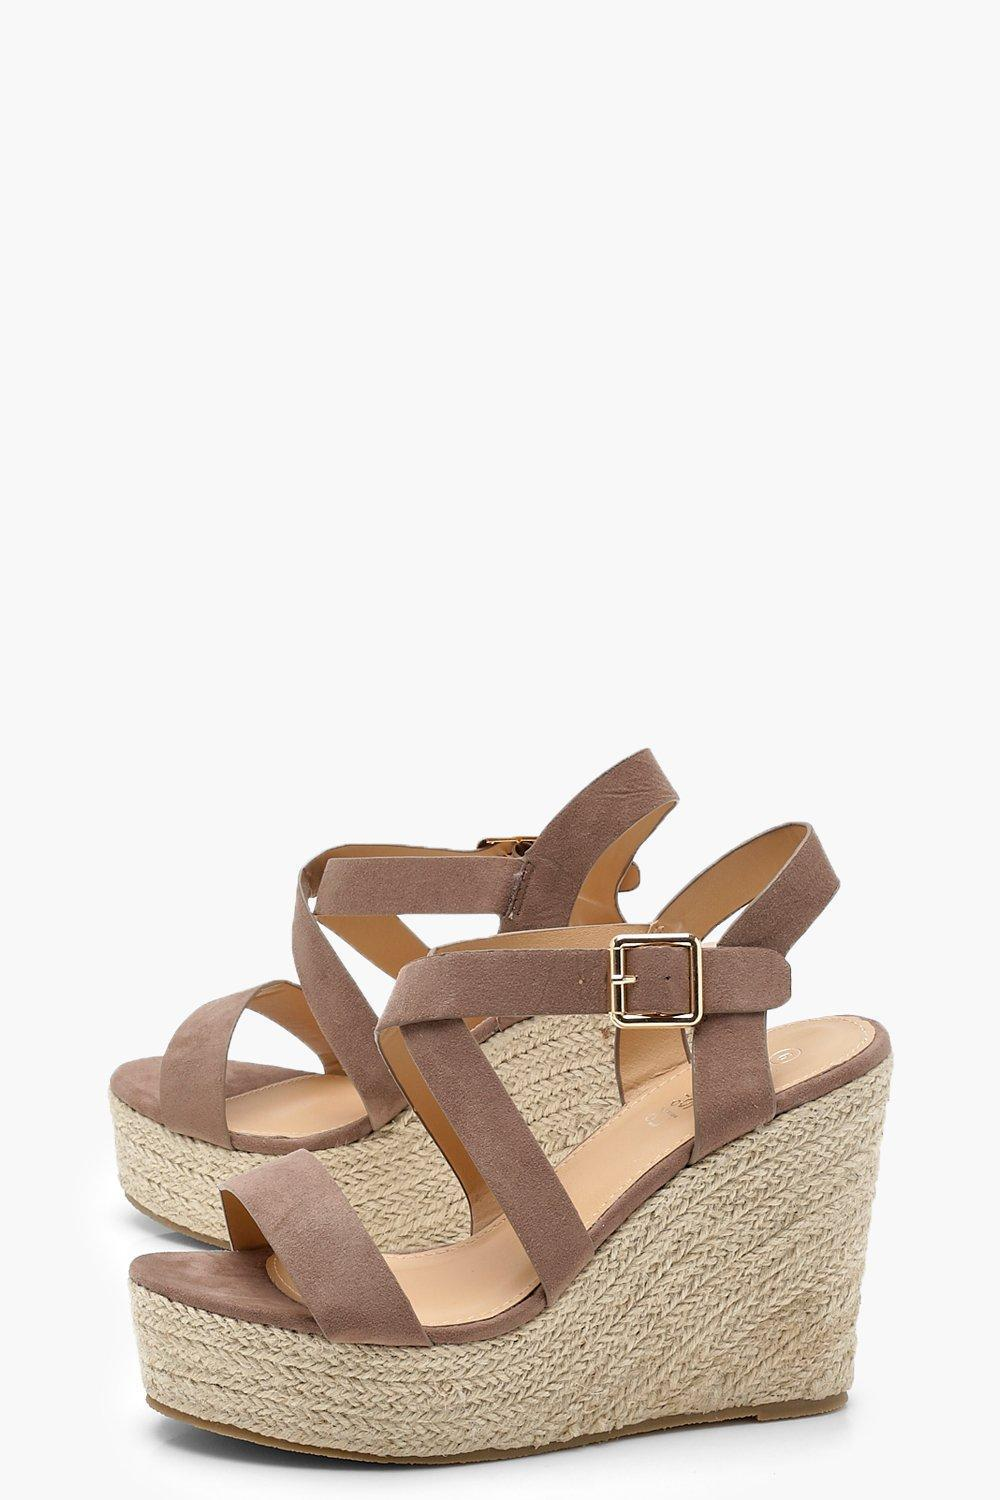 Zoe Strappy Espadrille Wedges vgn4szAjag